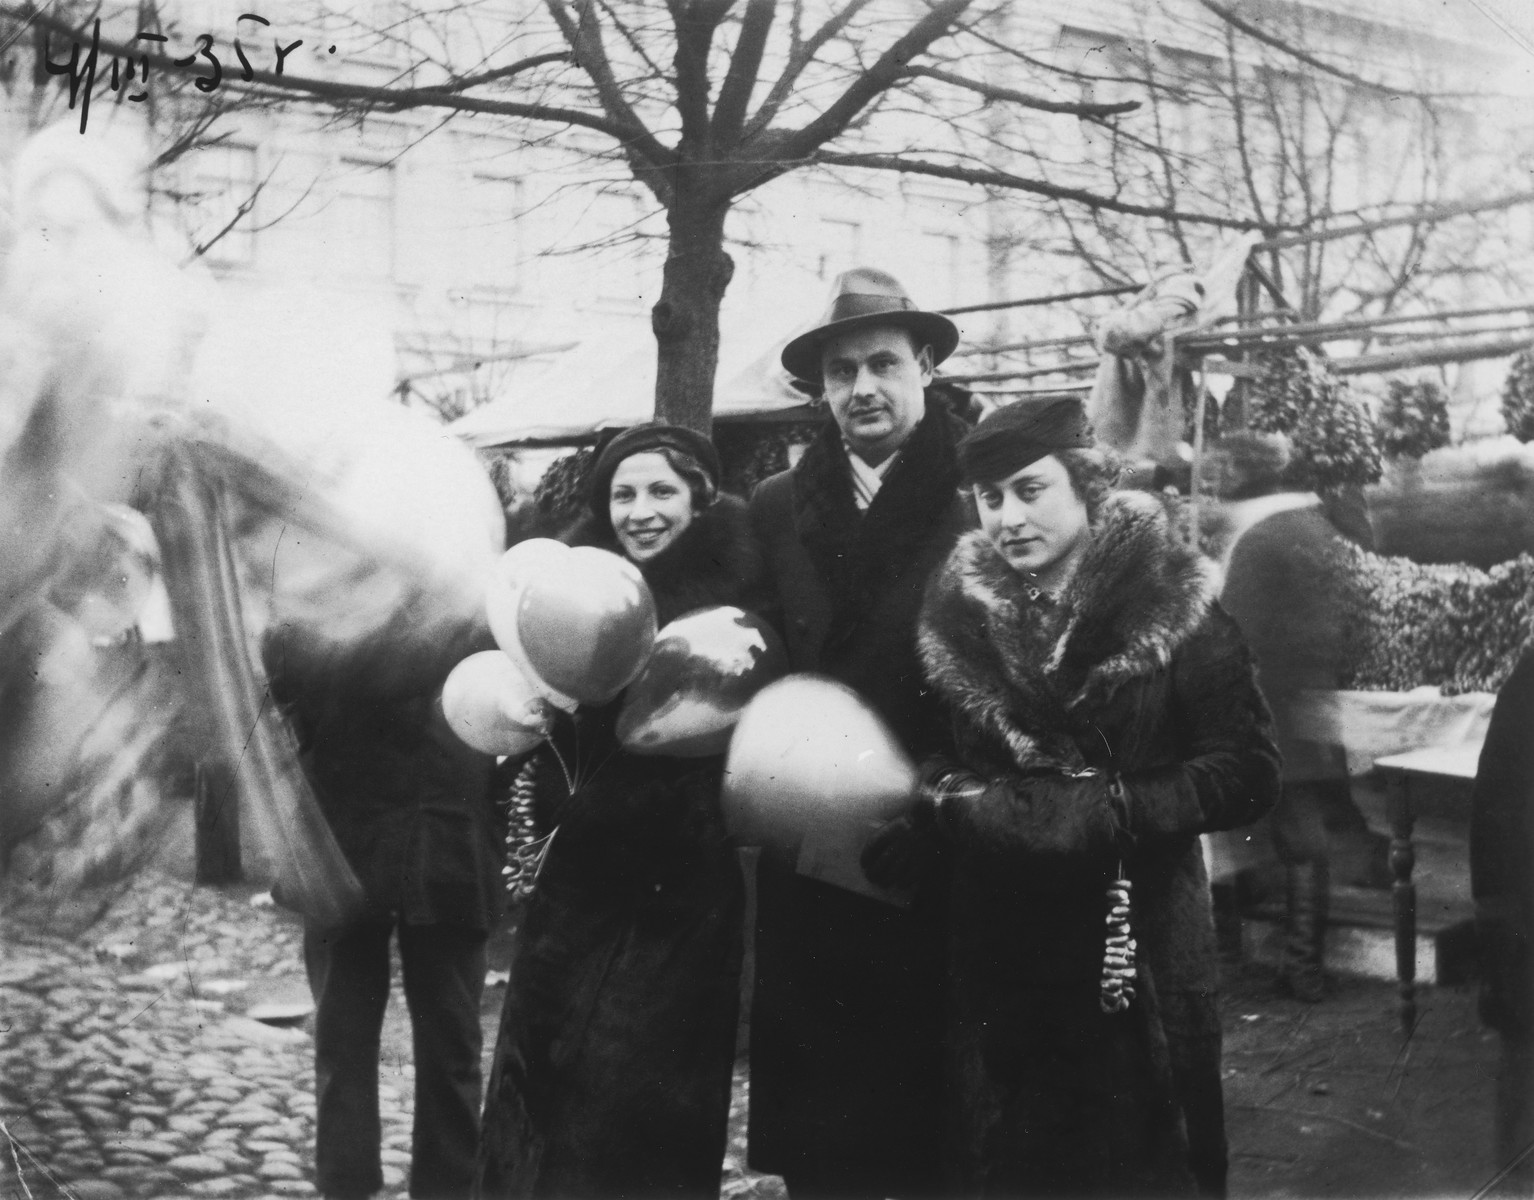 Two Jewish women visit the outdoor mushroom market in Vilna.  Raya Markon is pictured on the left; Raya Lewin is on the right.